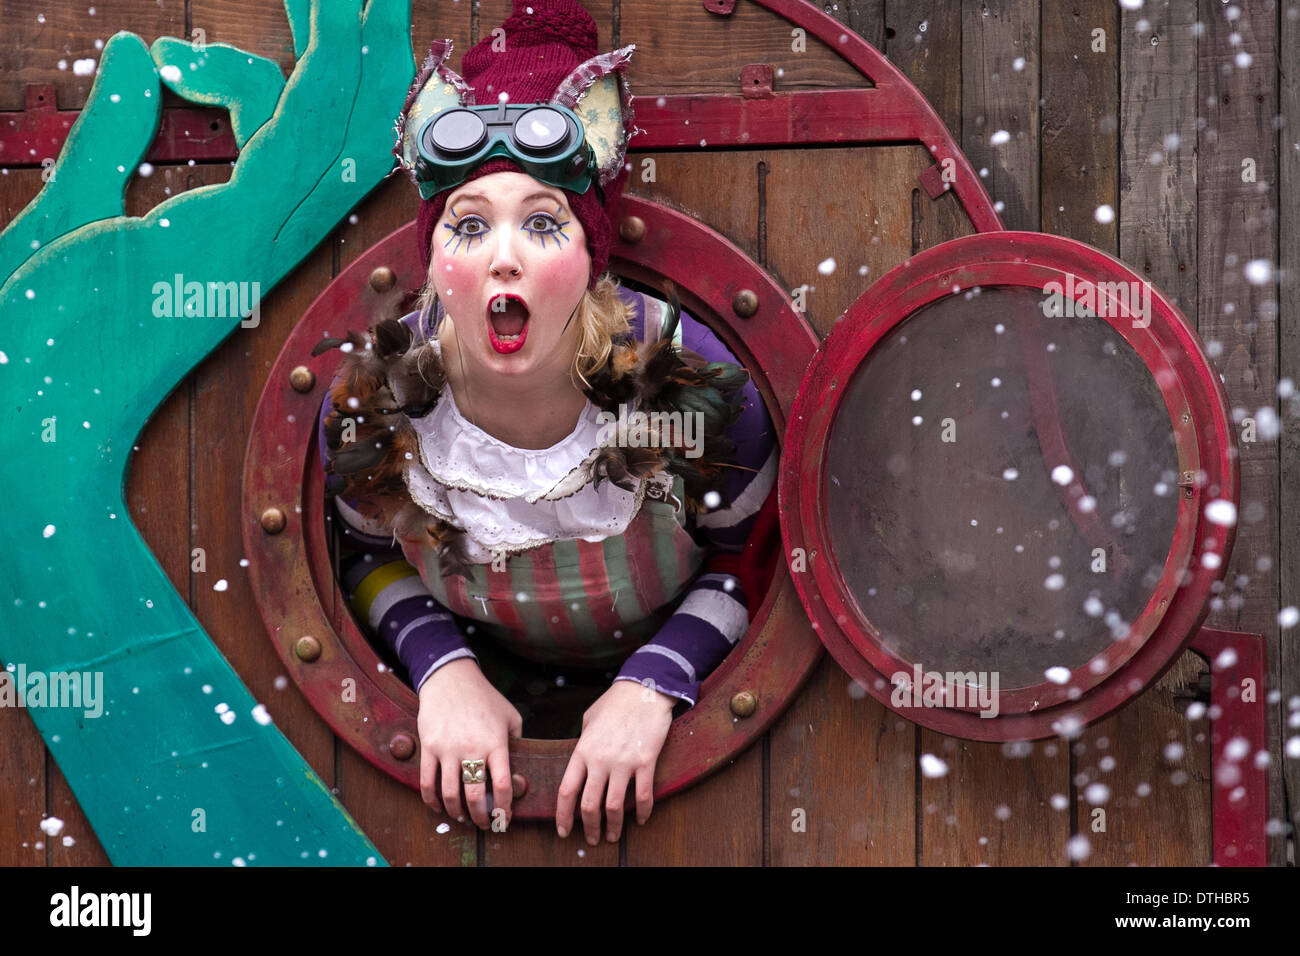 Blackpool, Lancashire, UK 18th February, 2014. Actress Alice Bounce, 27 from London at St John's Square where 'The Stock Photo